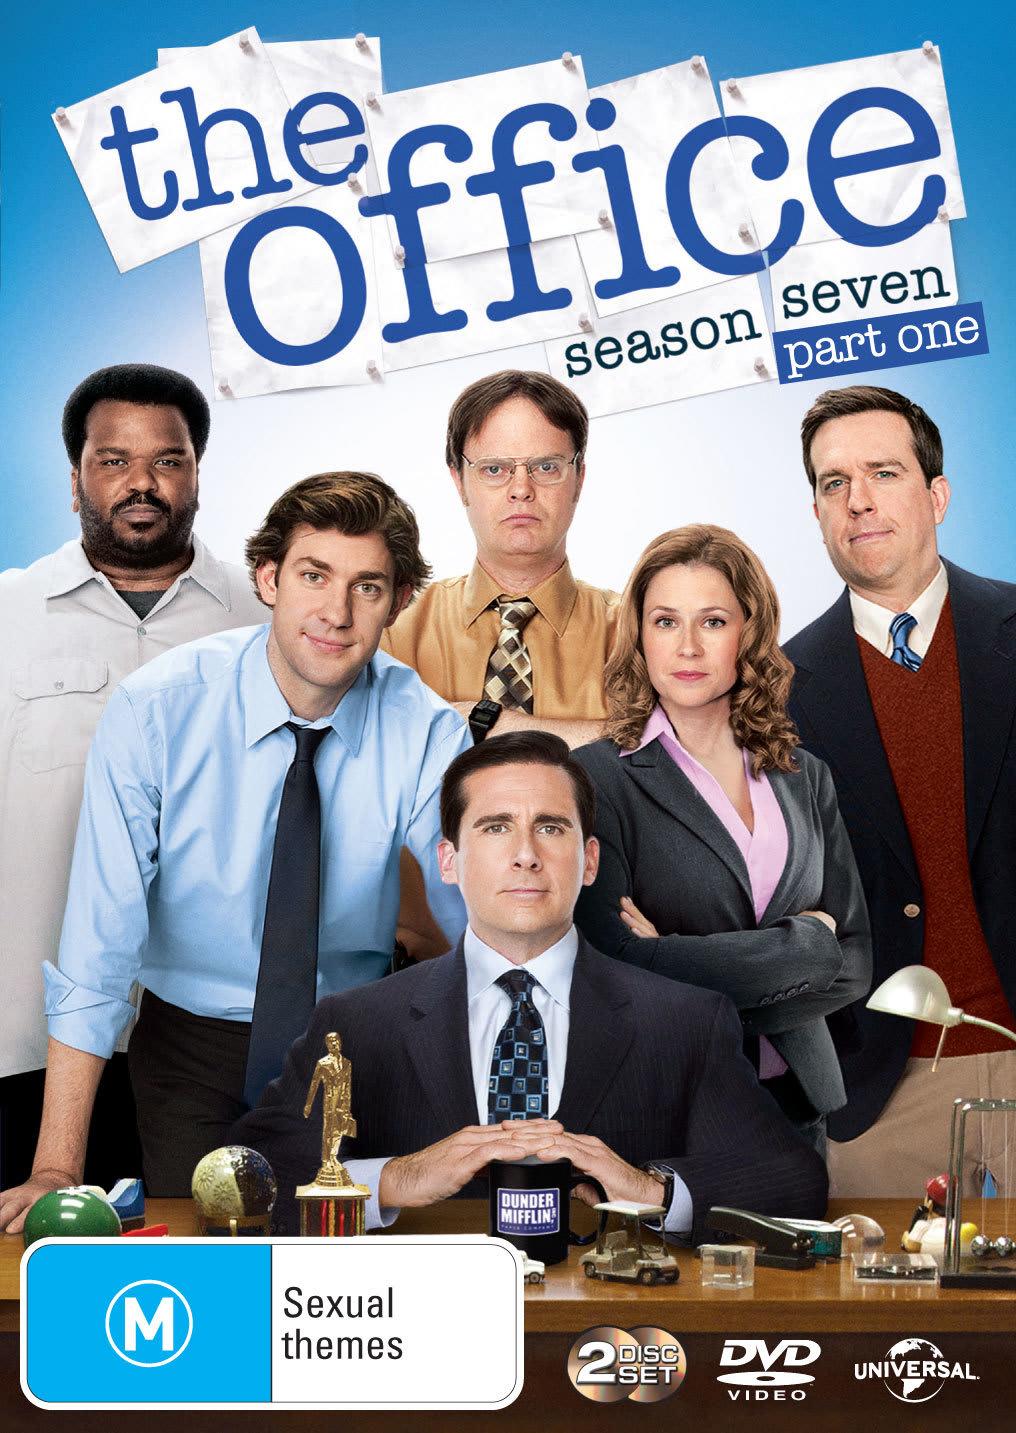 The Office - An American Workplace: Season Seven, Part One [DVD]